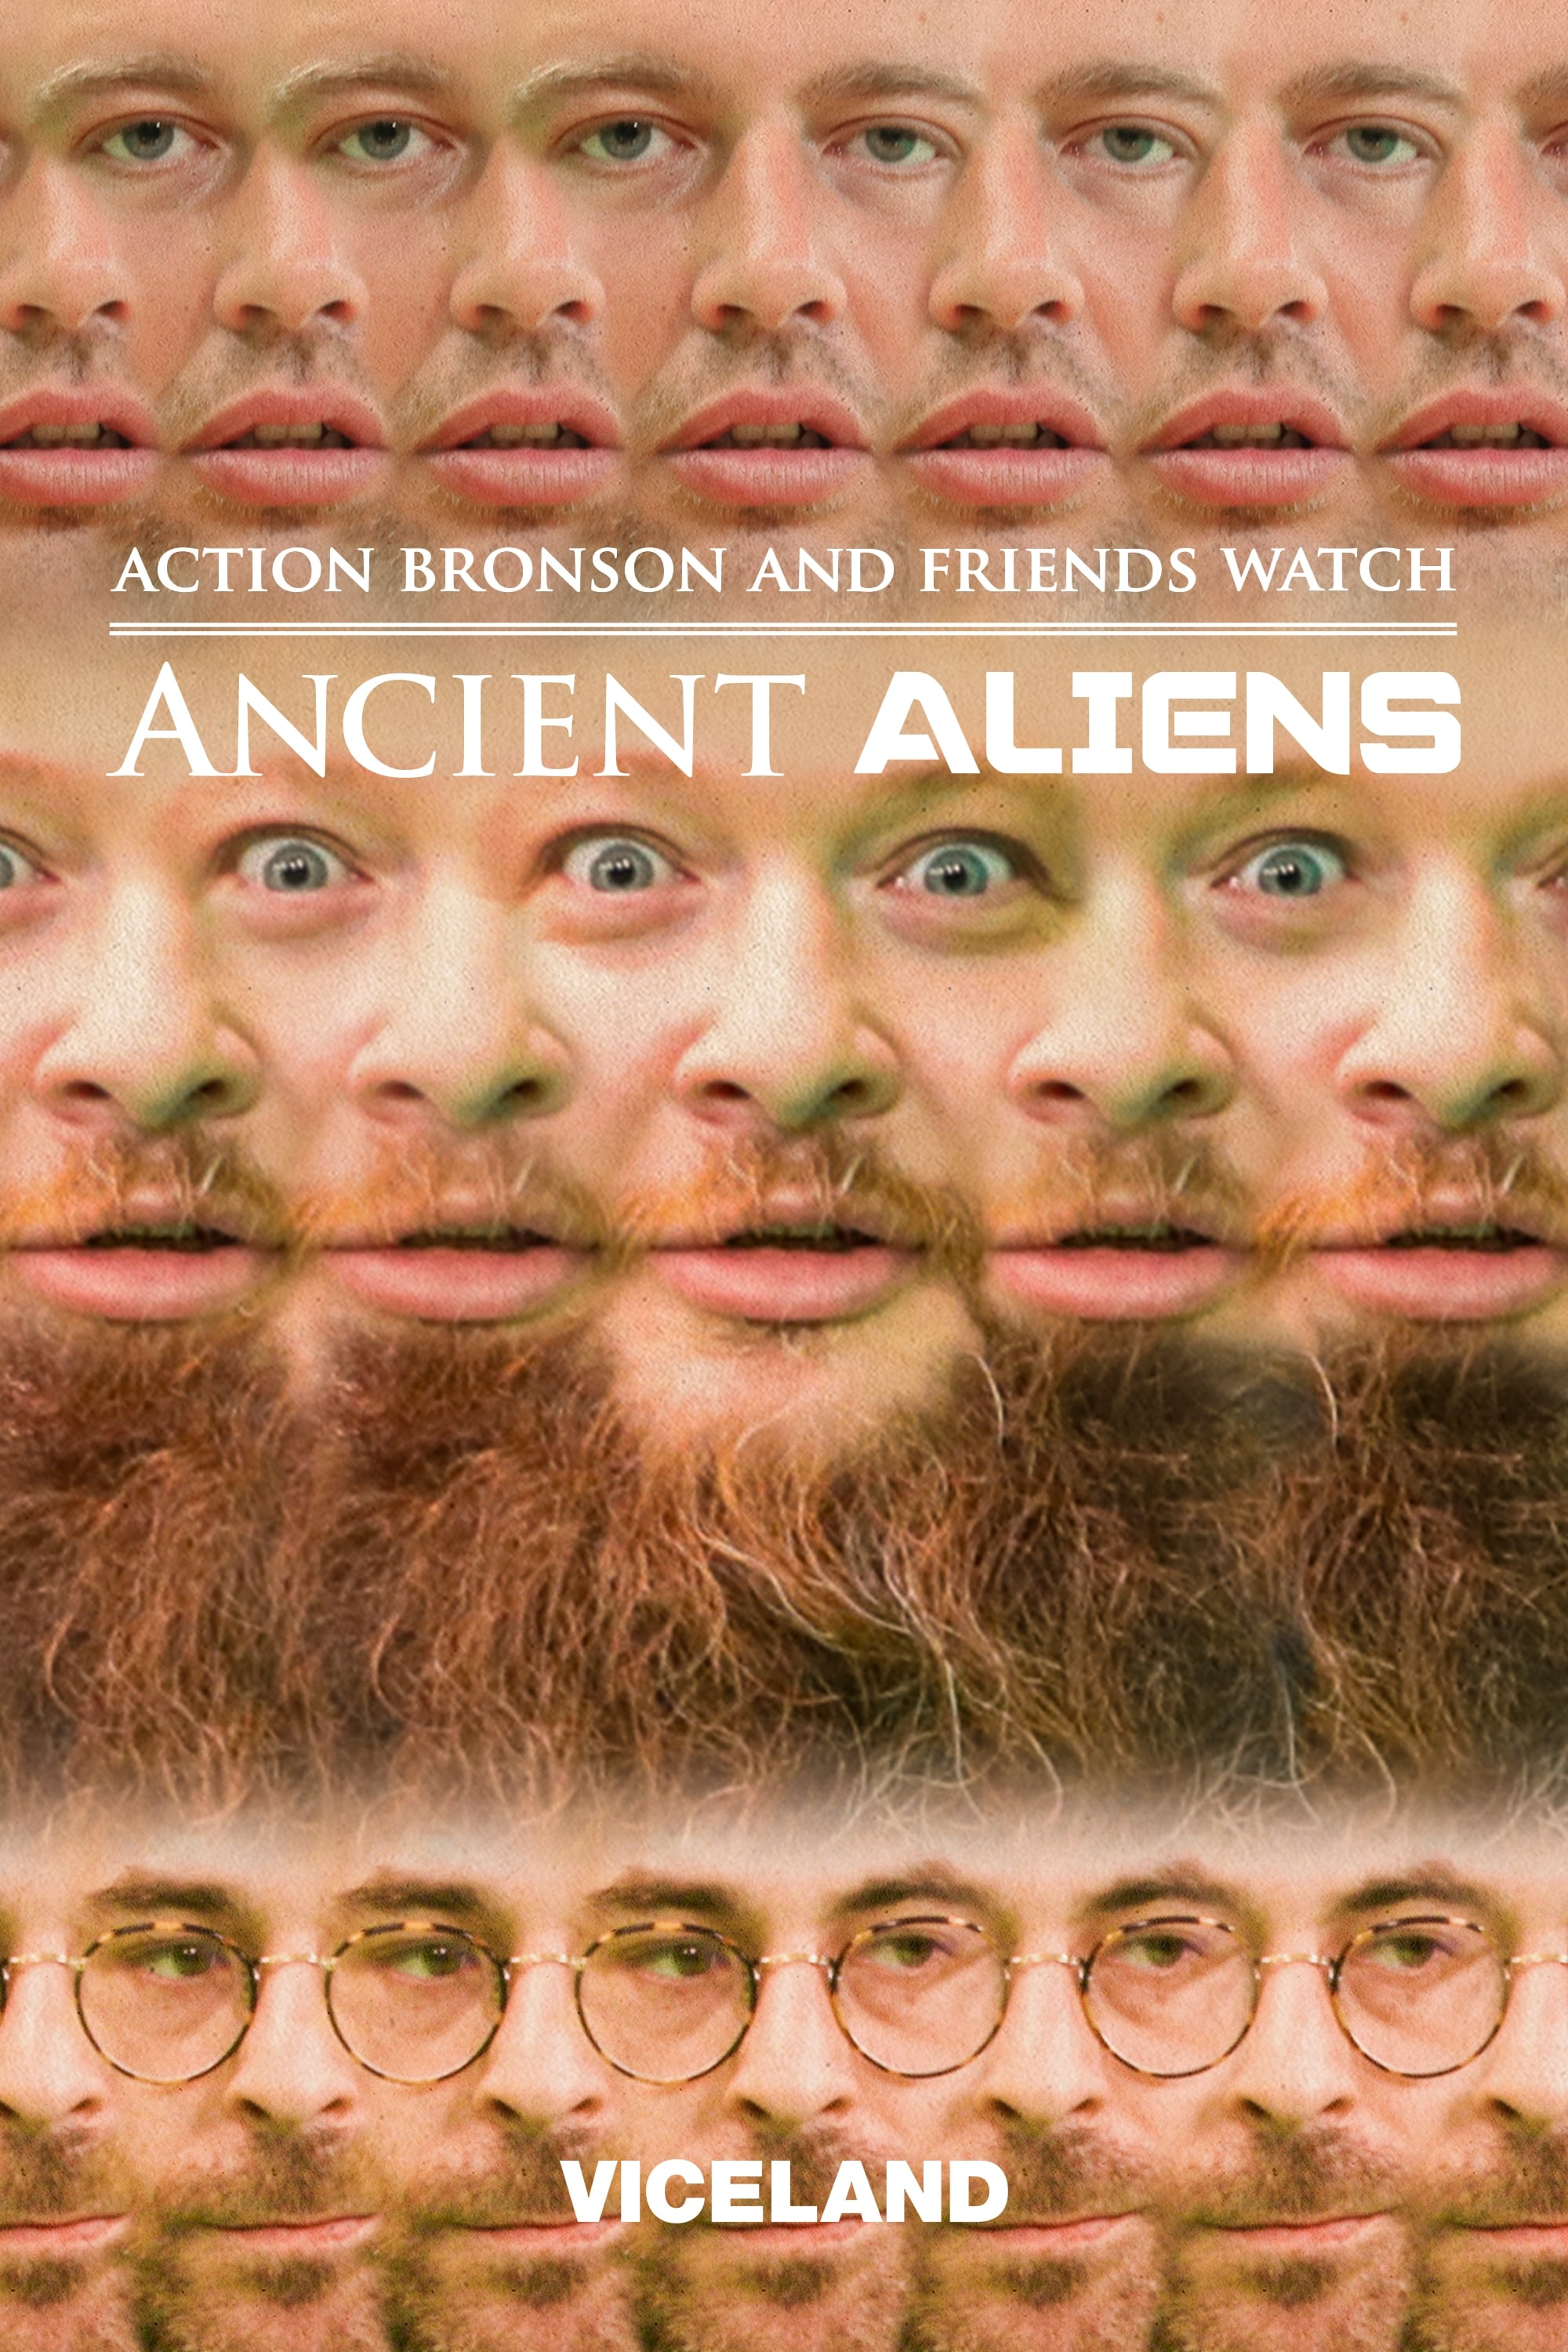 Action Bronson and Friends Watch Ancient Aliens (2016)